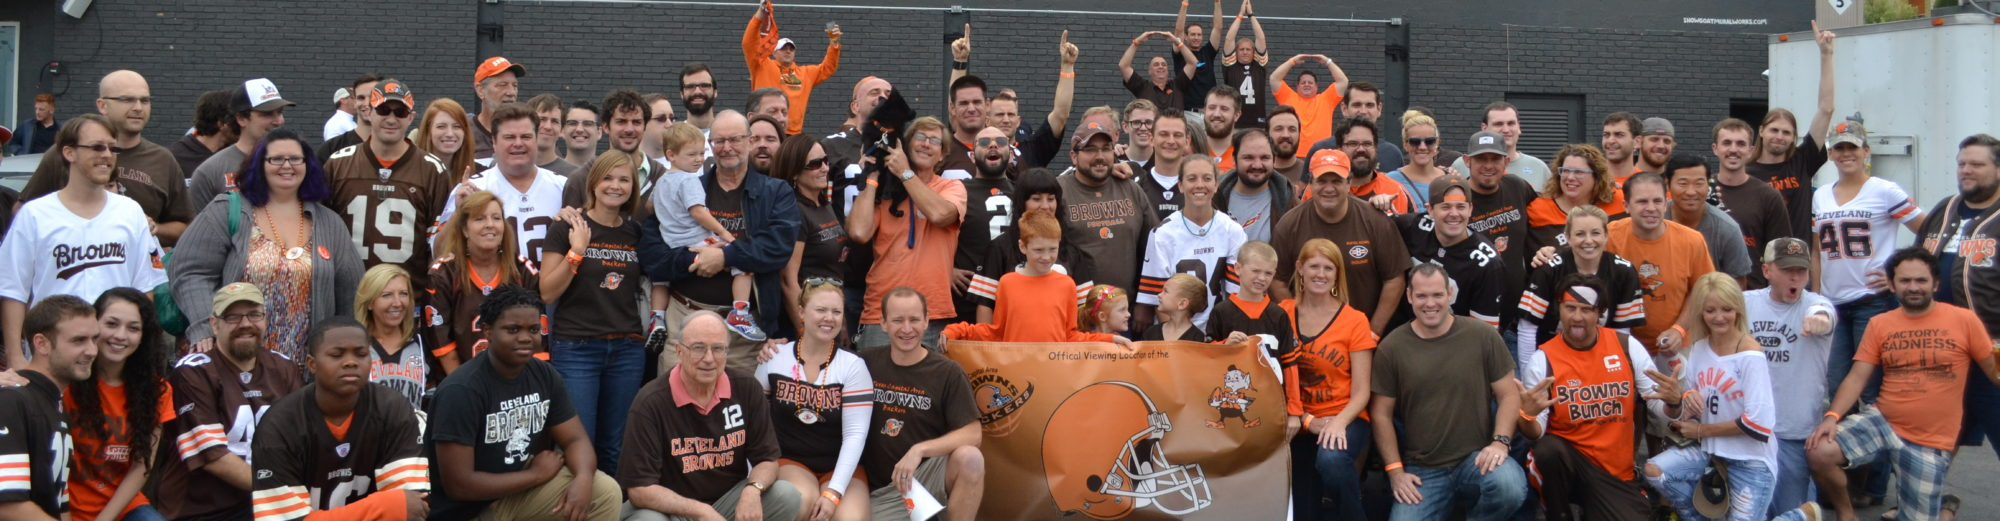 Texas Capital Area Browns Backers